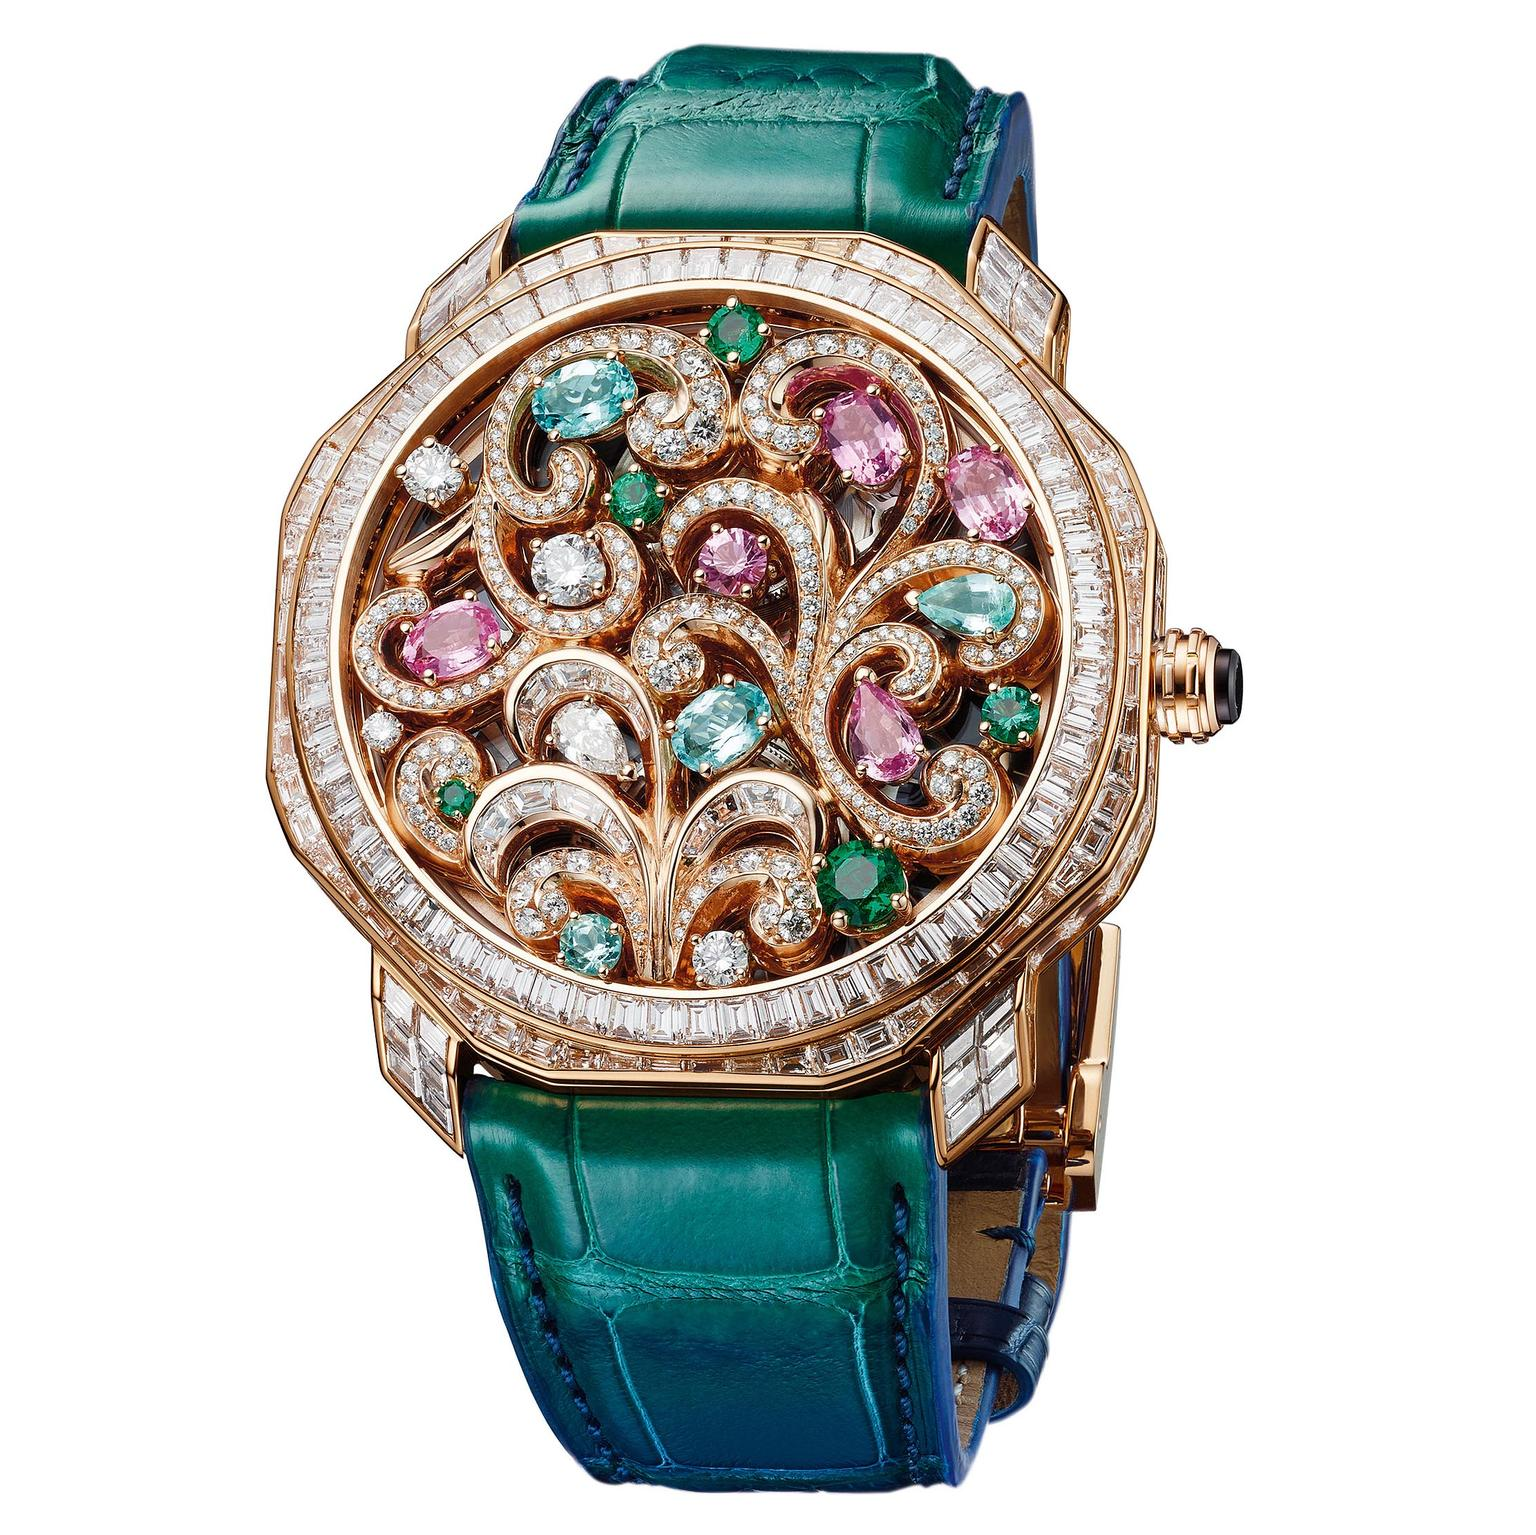 Octo Roma watch by Bulgari